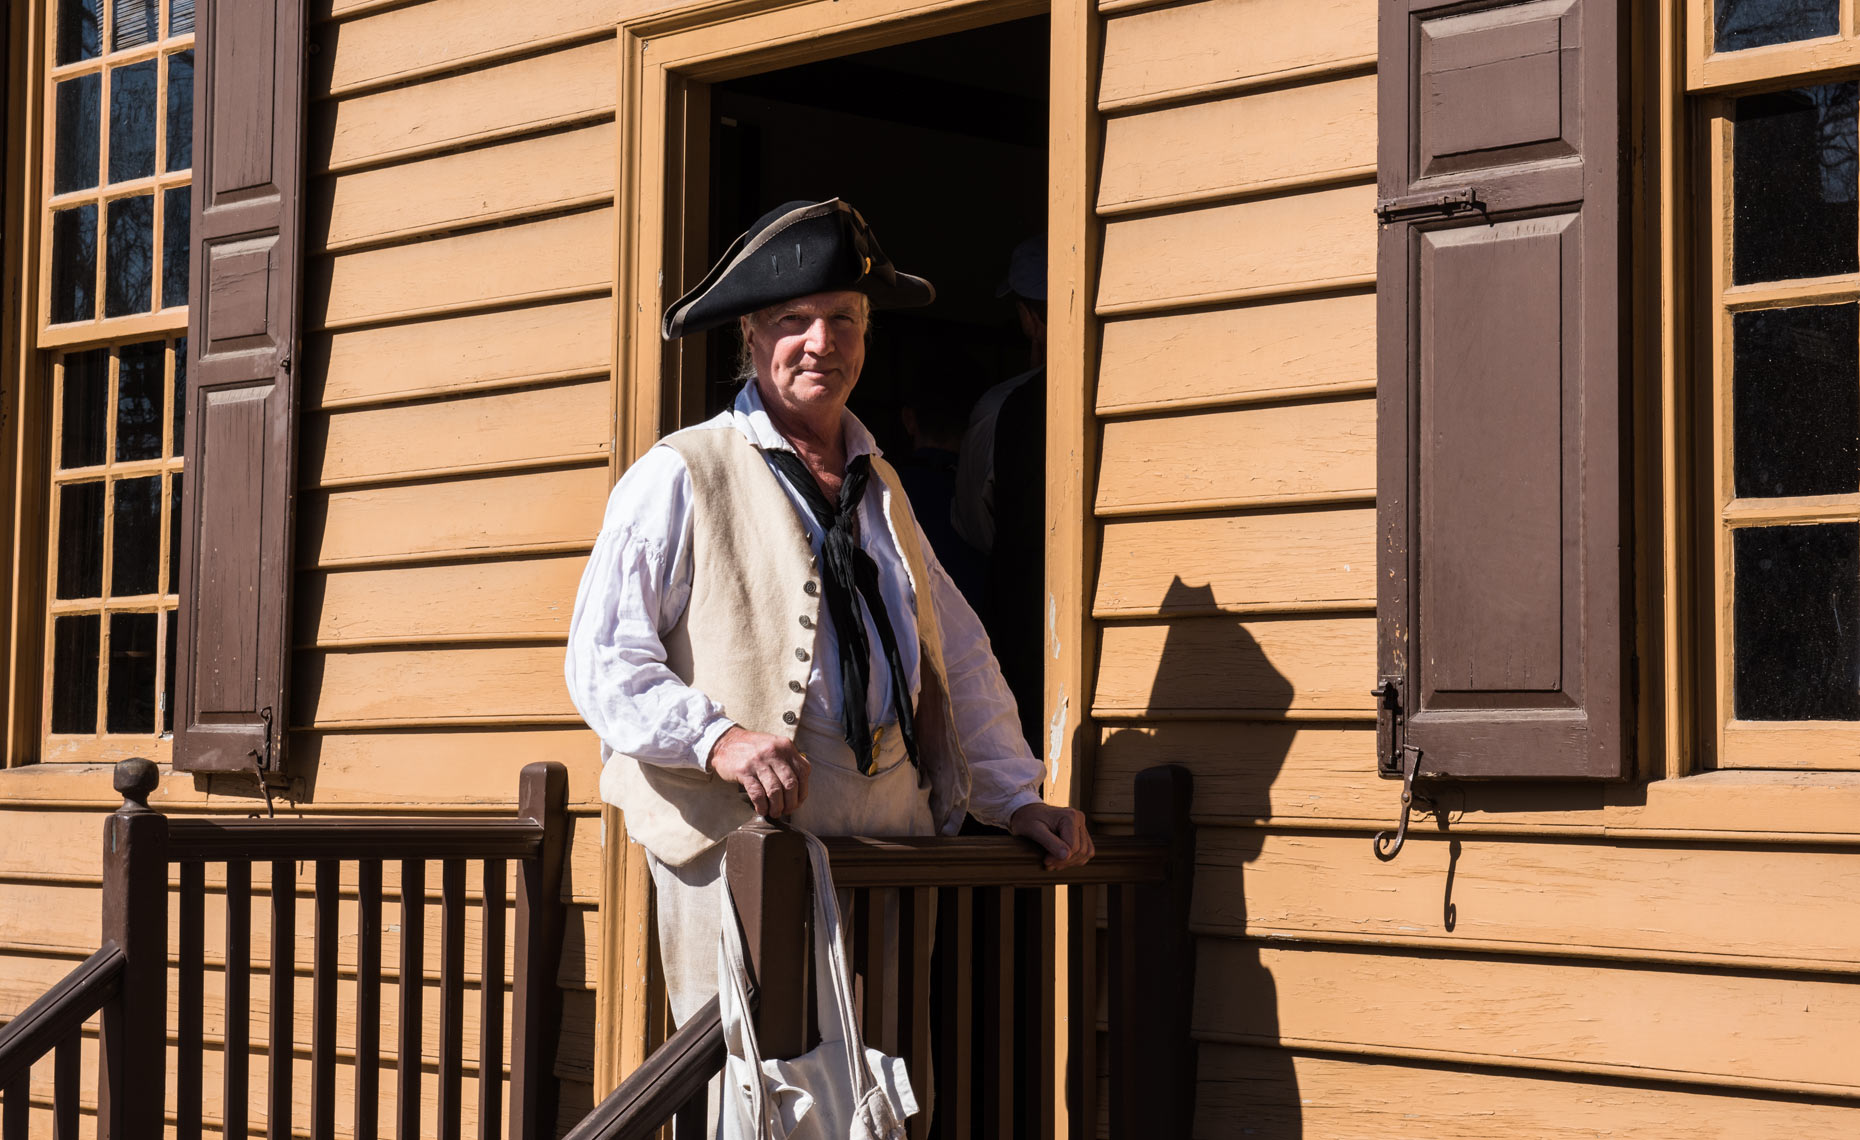 Colton-travel-photography-williamsburg-va-107